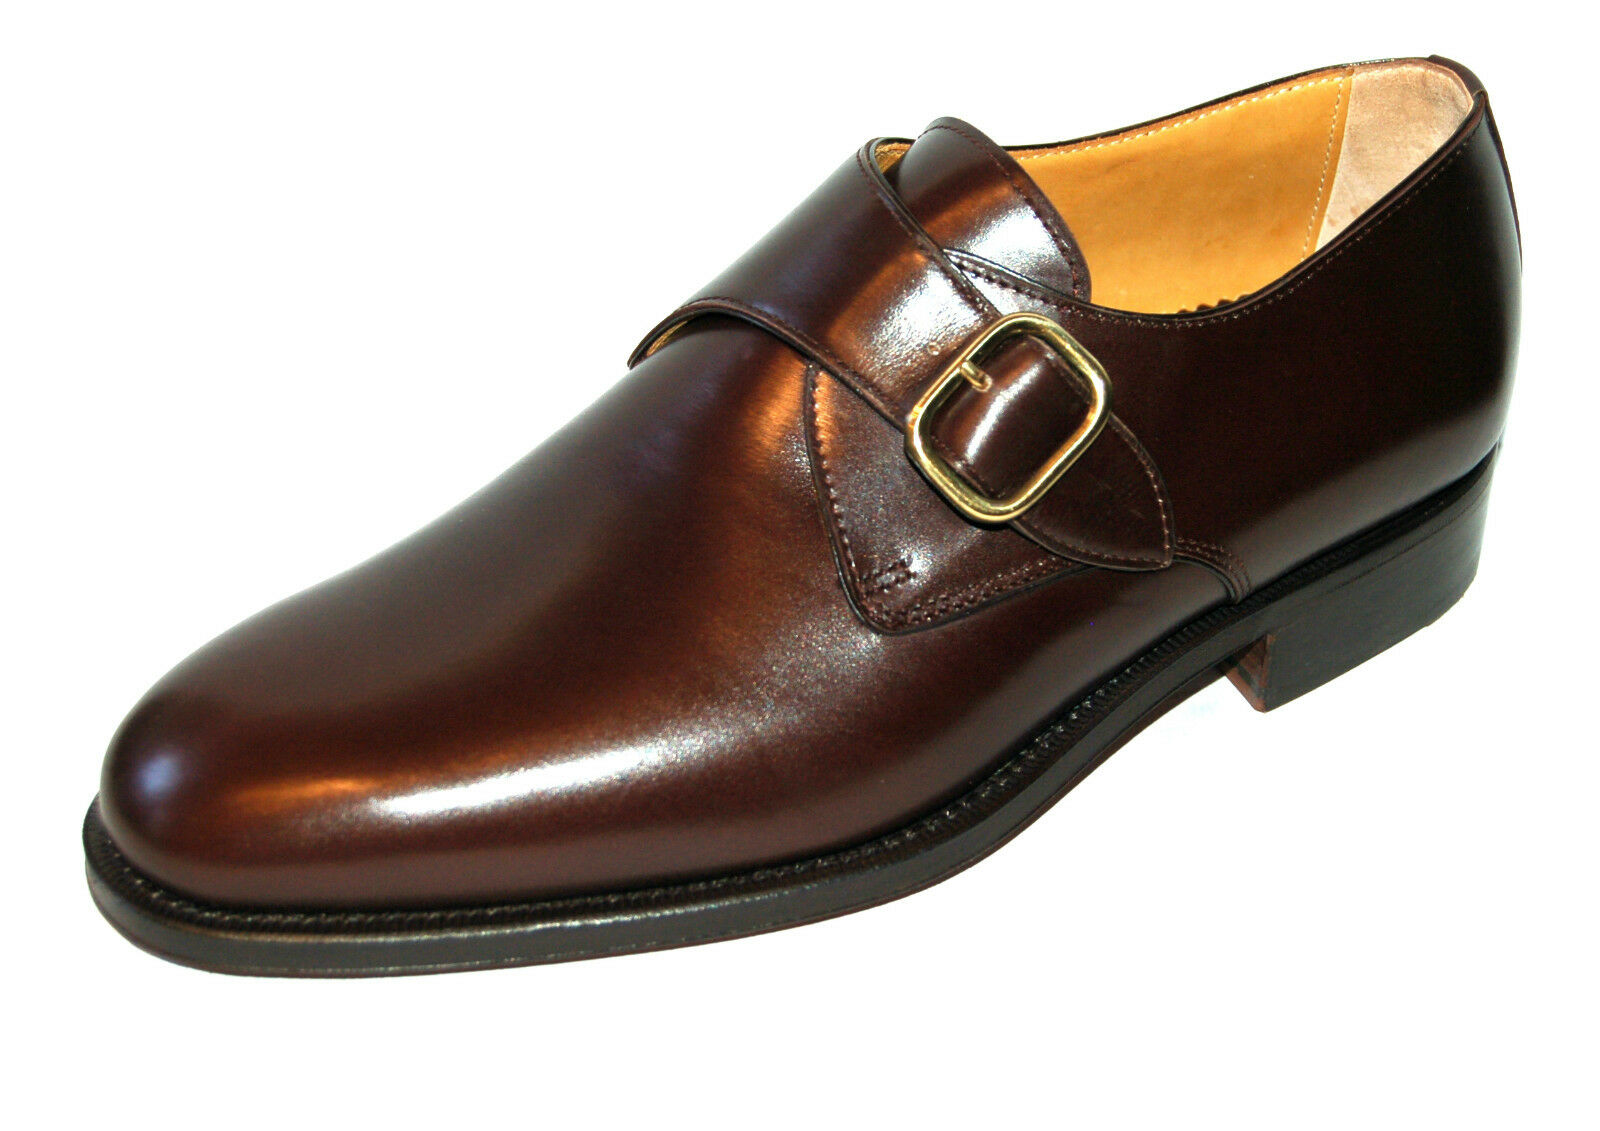 MAN BUCKLE DERBY - CALF 5048 HEAD BROWN - LEATHER SOLE + BLAKE CONSTRUCTION